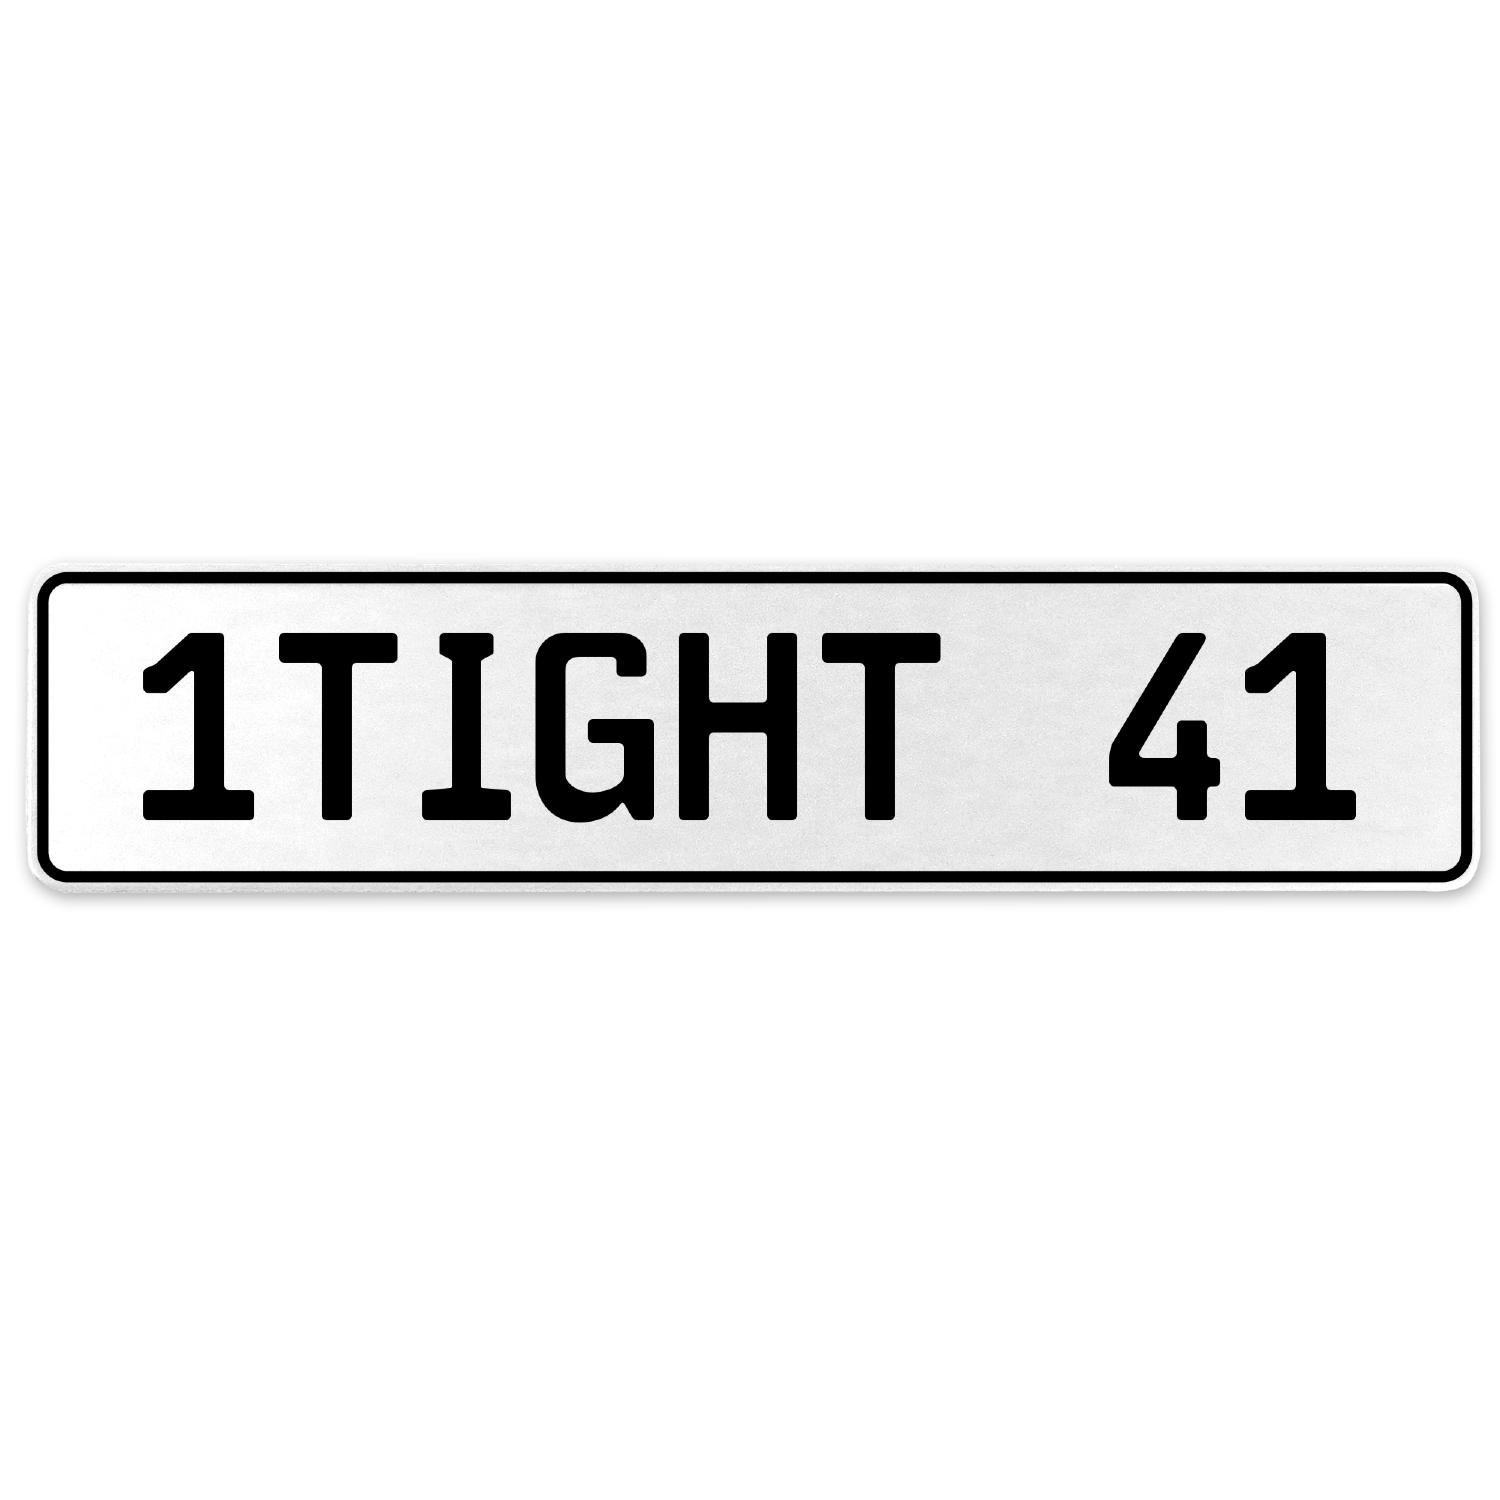 Vintage Parts 554836 1TIGHT 41 White Stamped Aluminum European License Plate